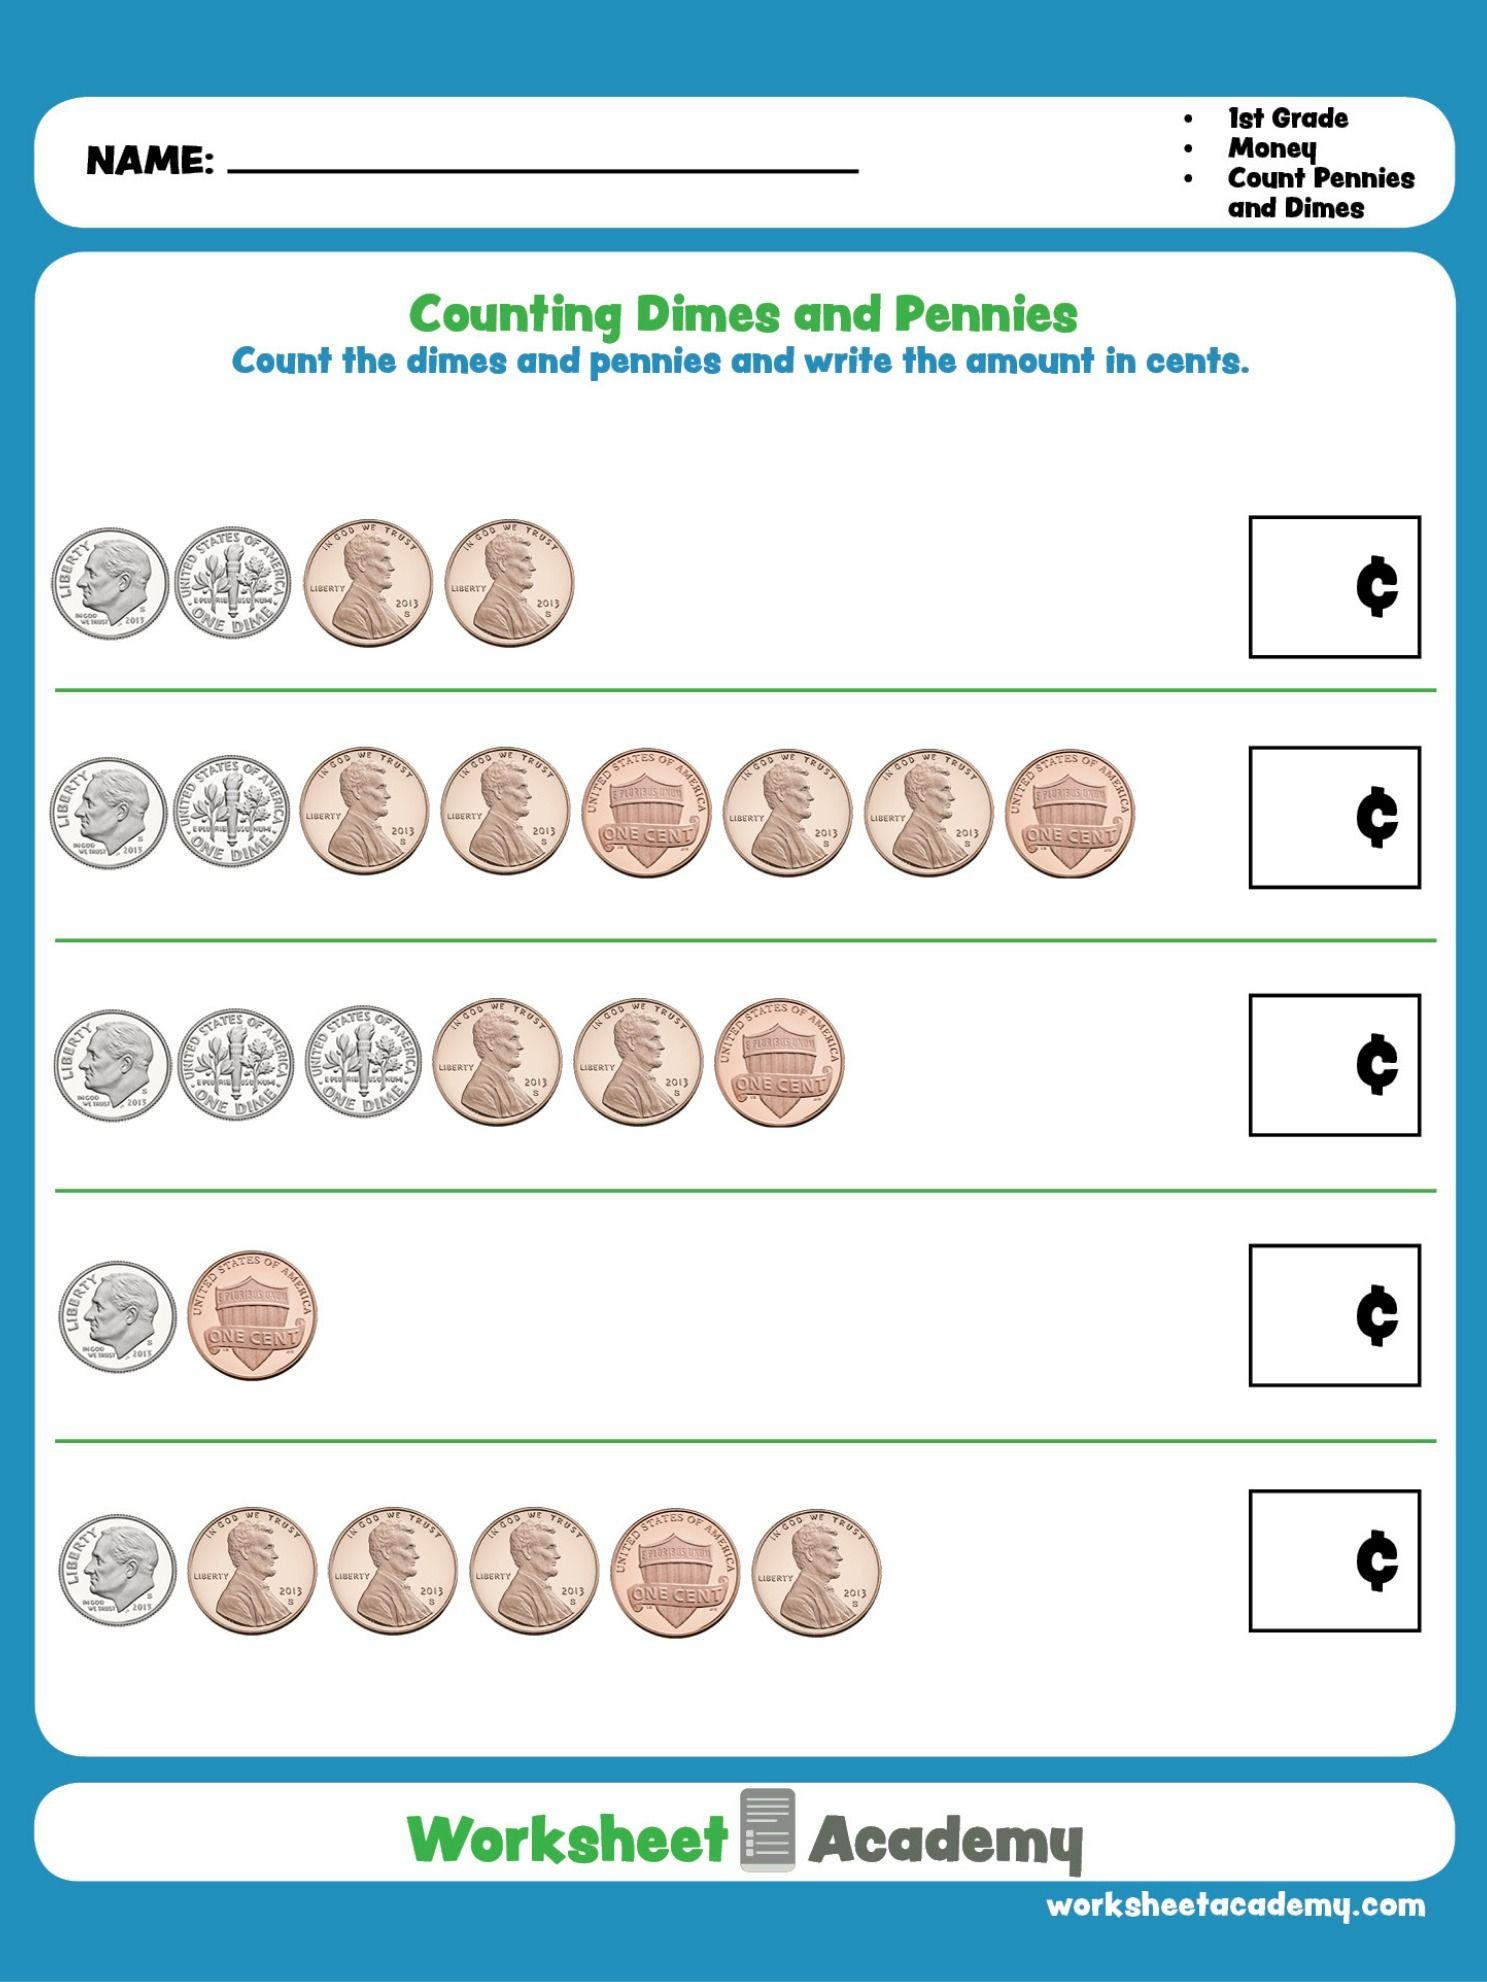 Practice Counting Dimes And Pennies This Education